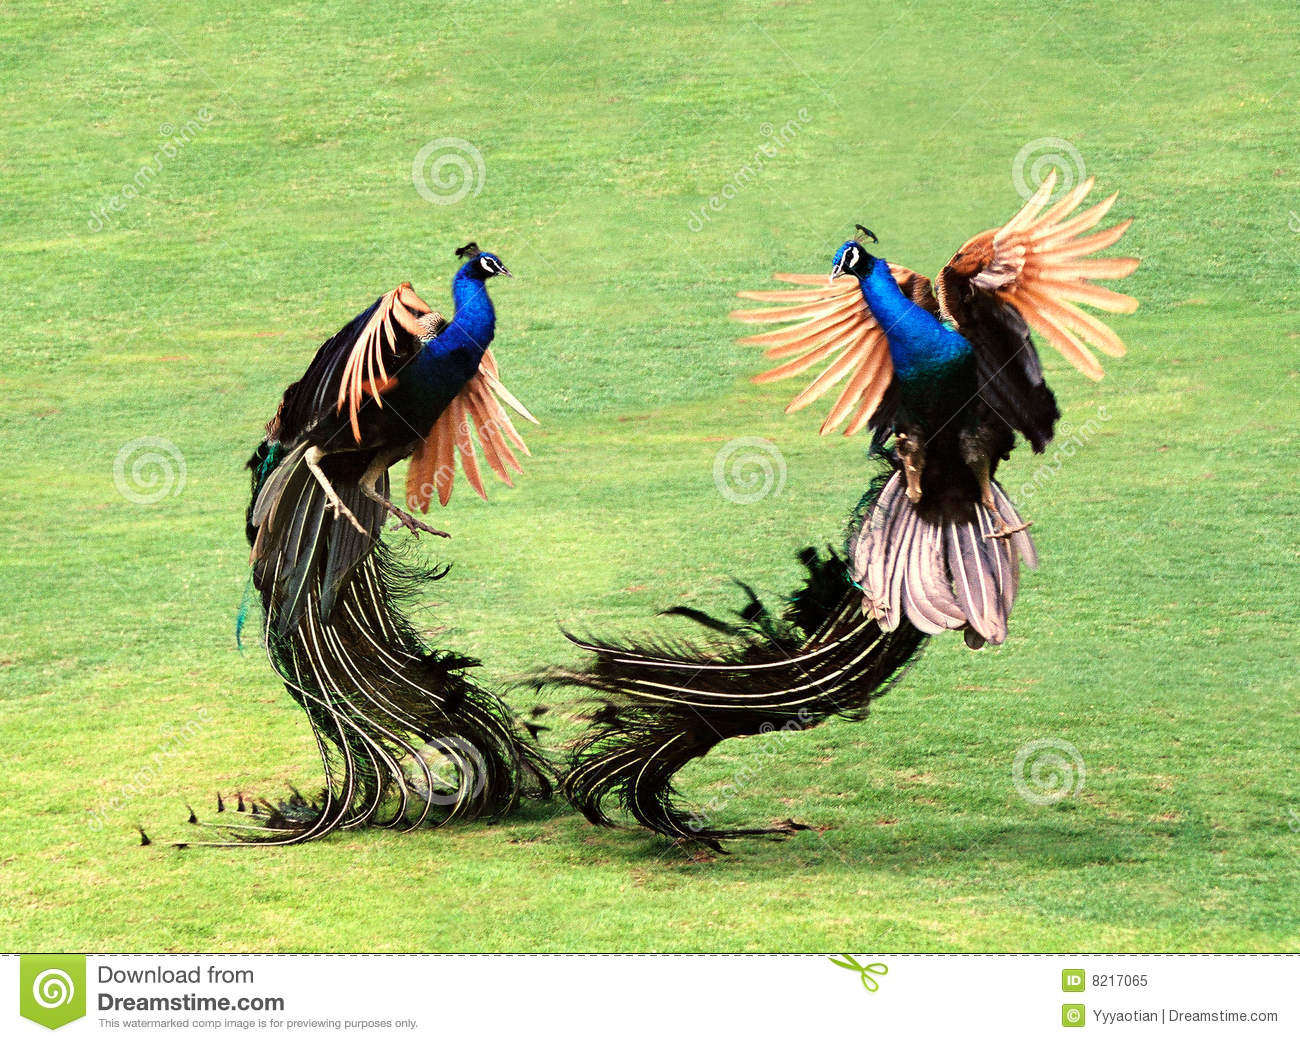 Two Peacocks Royalty Free Stock Photo - Image: 8217065